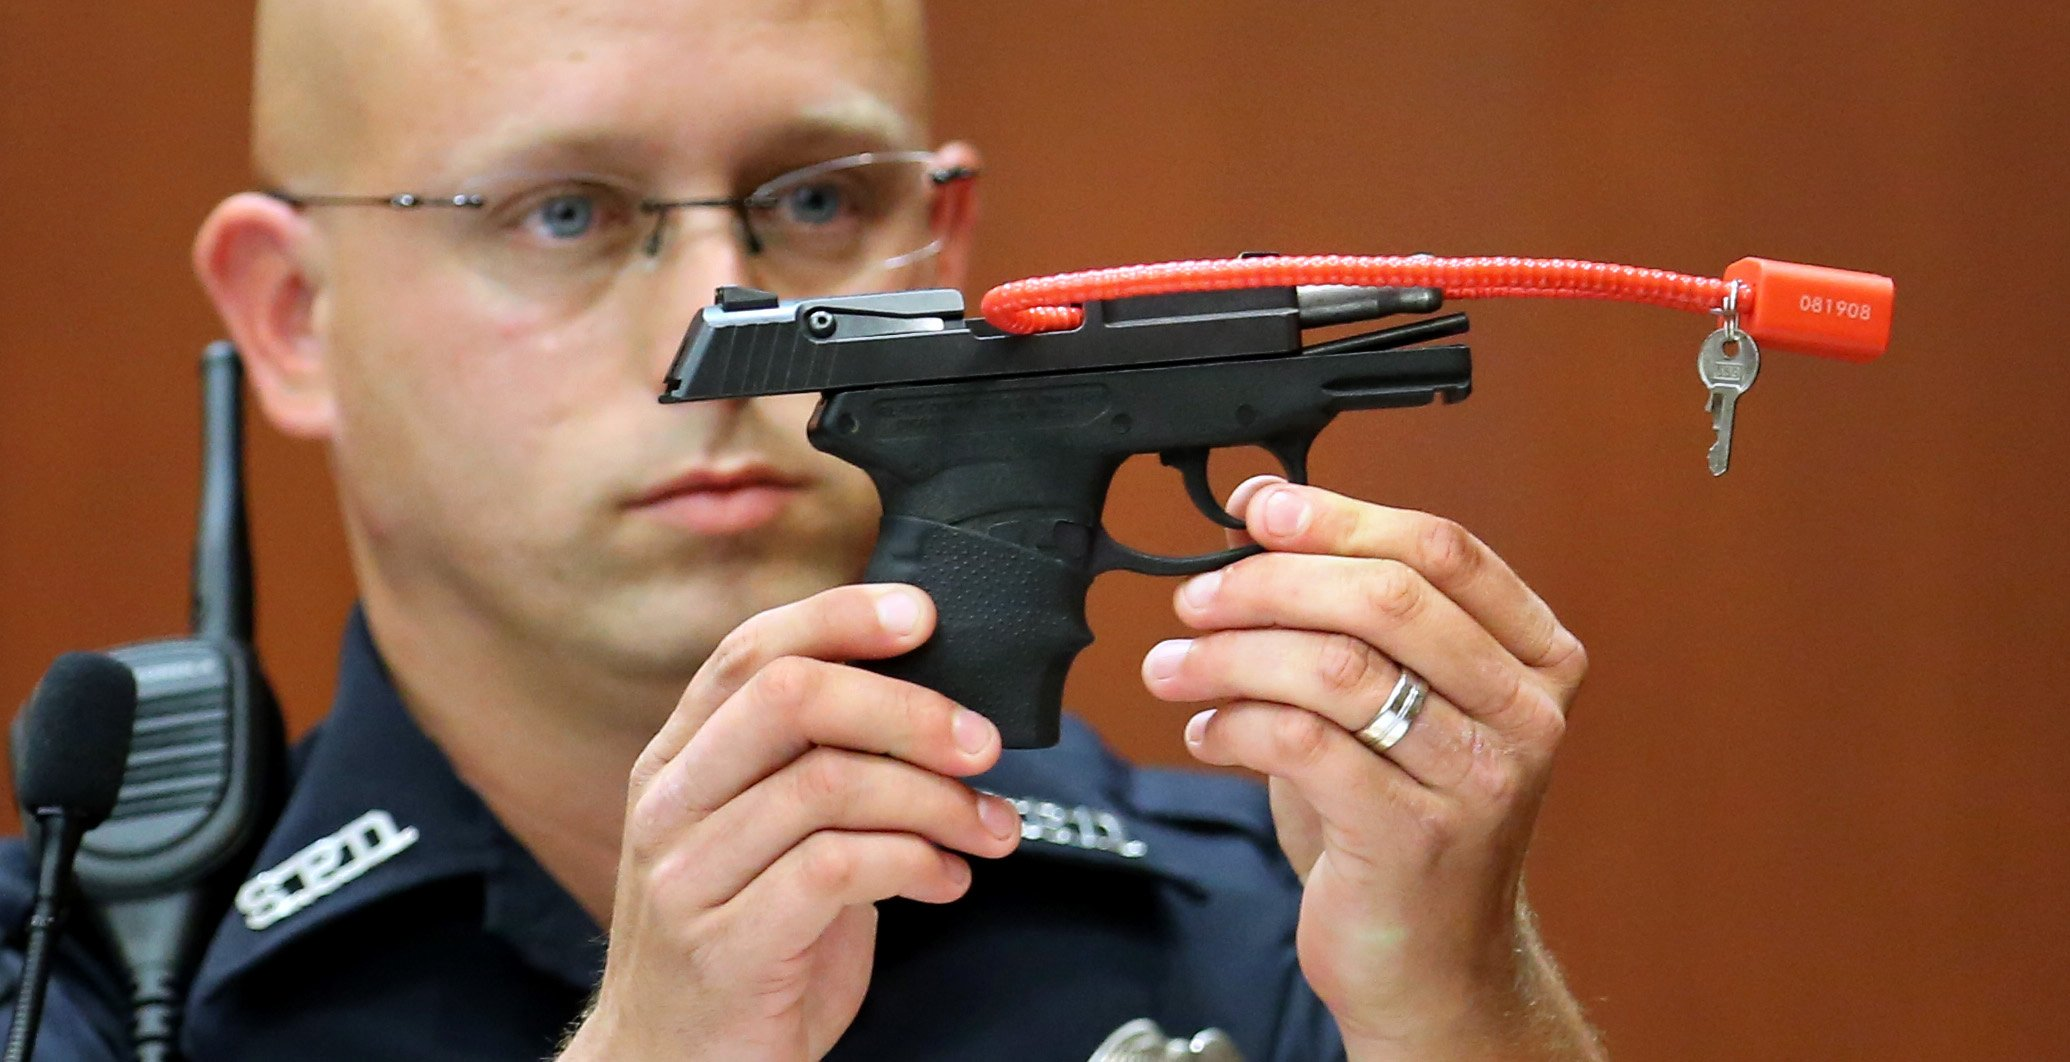 Sanford police officer Timothy Smith holds up the gun that was used to kill Trayvon Martin, while testifying in the 15th day of the George Zimmerman trial, in Seminole circuit court in Sanford, Fla., Friday, June 28, 2013. Zimmerman is accused in the fatal shooting of Trayvon Martin. Photo credit:  Joe Burbank/POOL